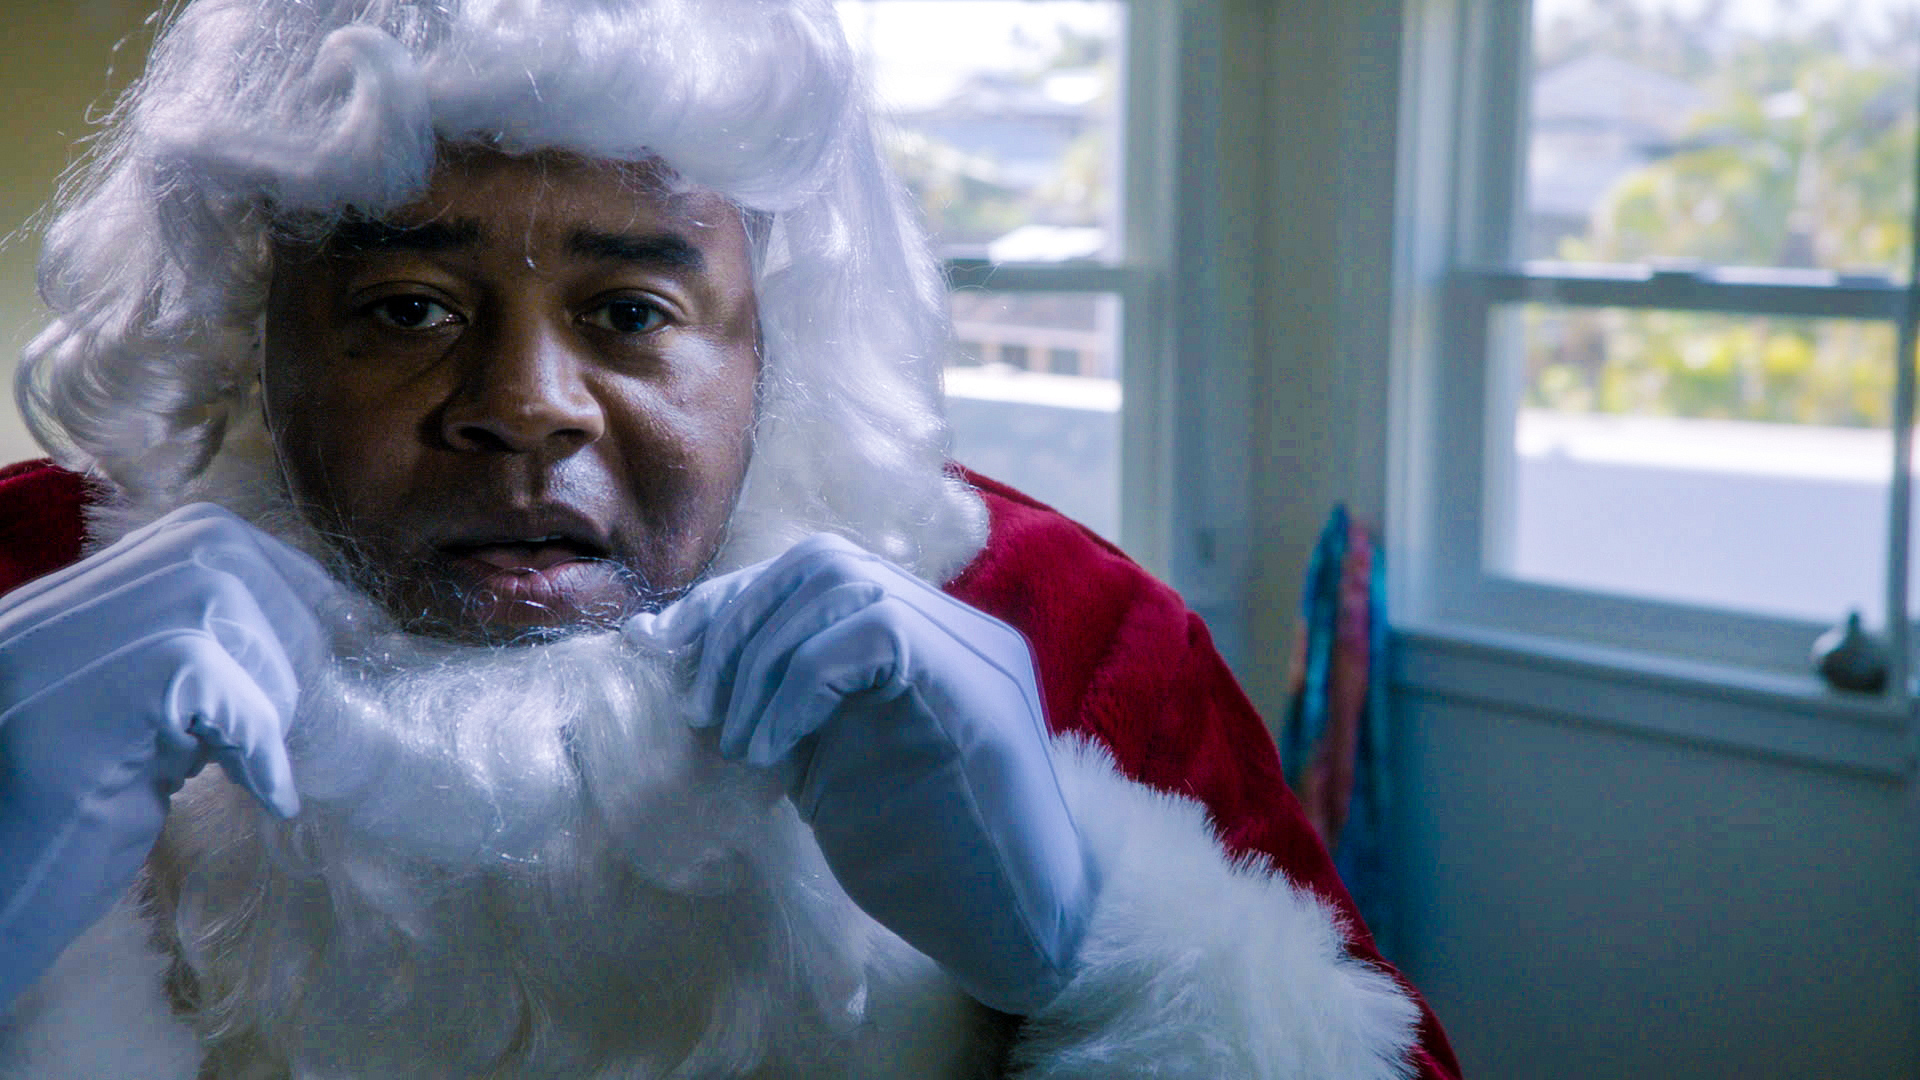 It's Santa! in Season 4 Episode 11